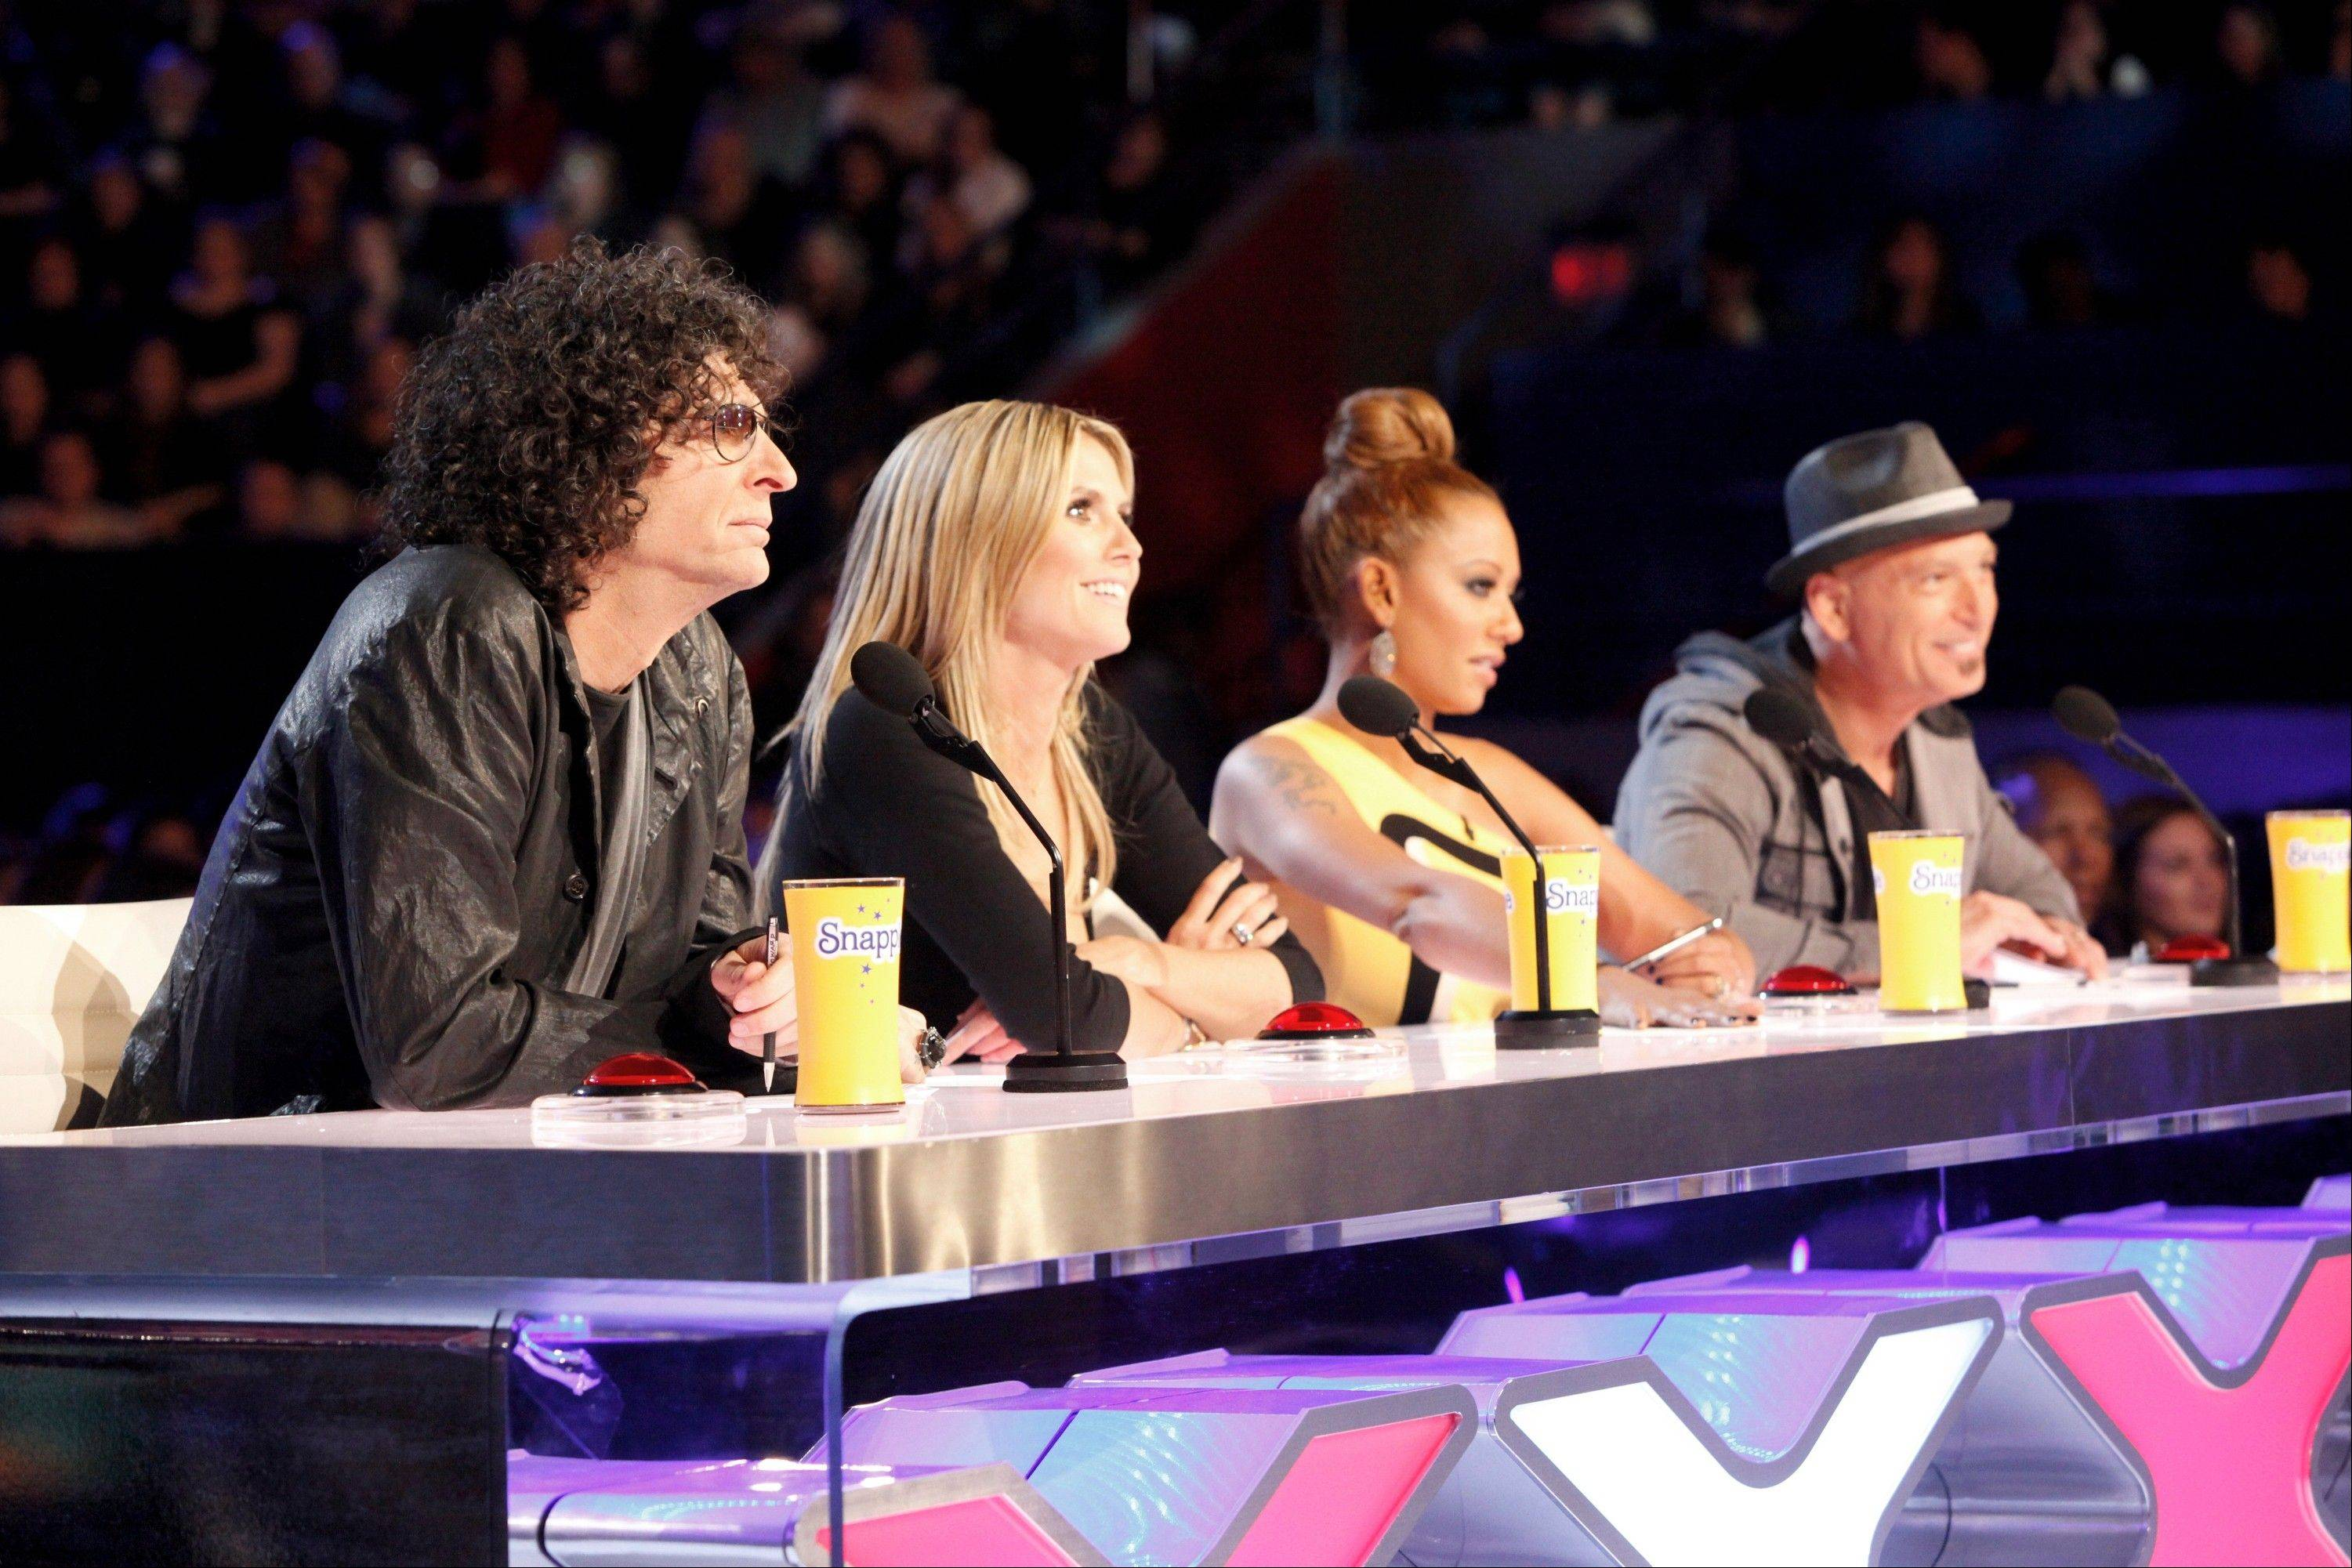 �America�s Got Talent� judges will be filming auditions in Rosemont in May. Returning judges Howard Stern, left, and Howie Mandel will be joined by Heidi Klum and Mel B.